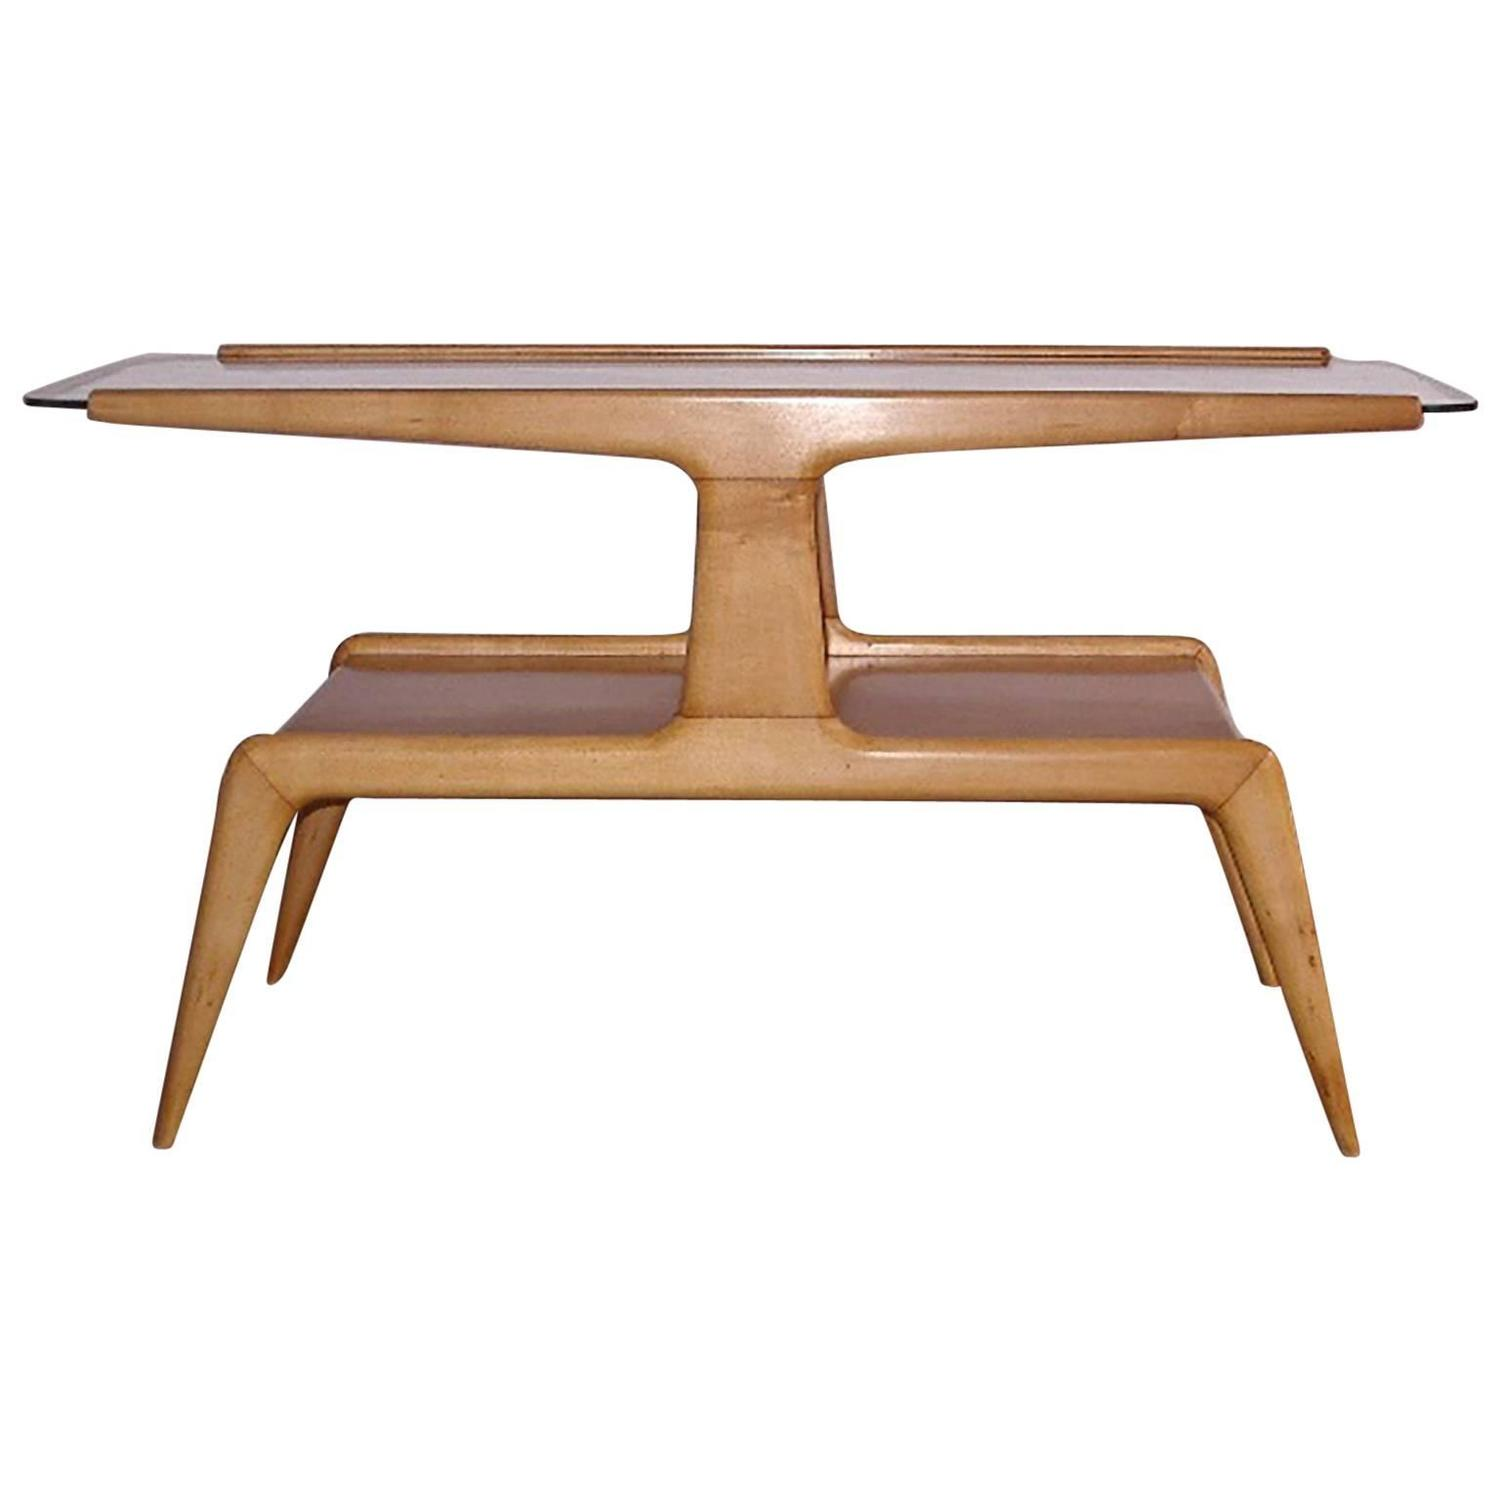 Italian Fine Coffee Table Attributed to Gio Ponti for Domus Nova